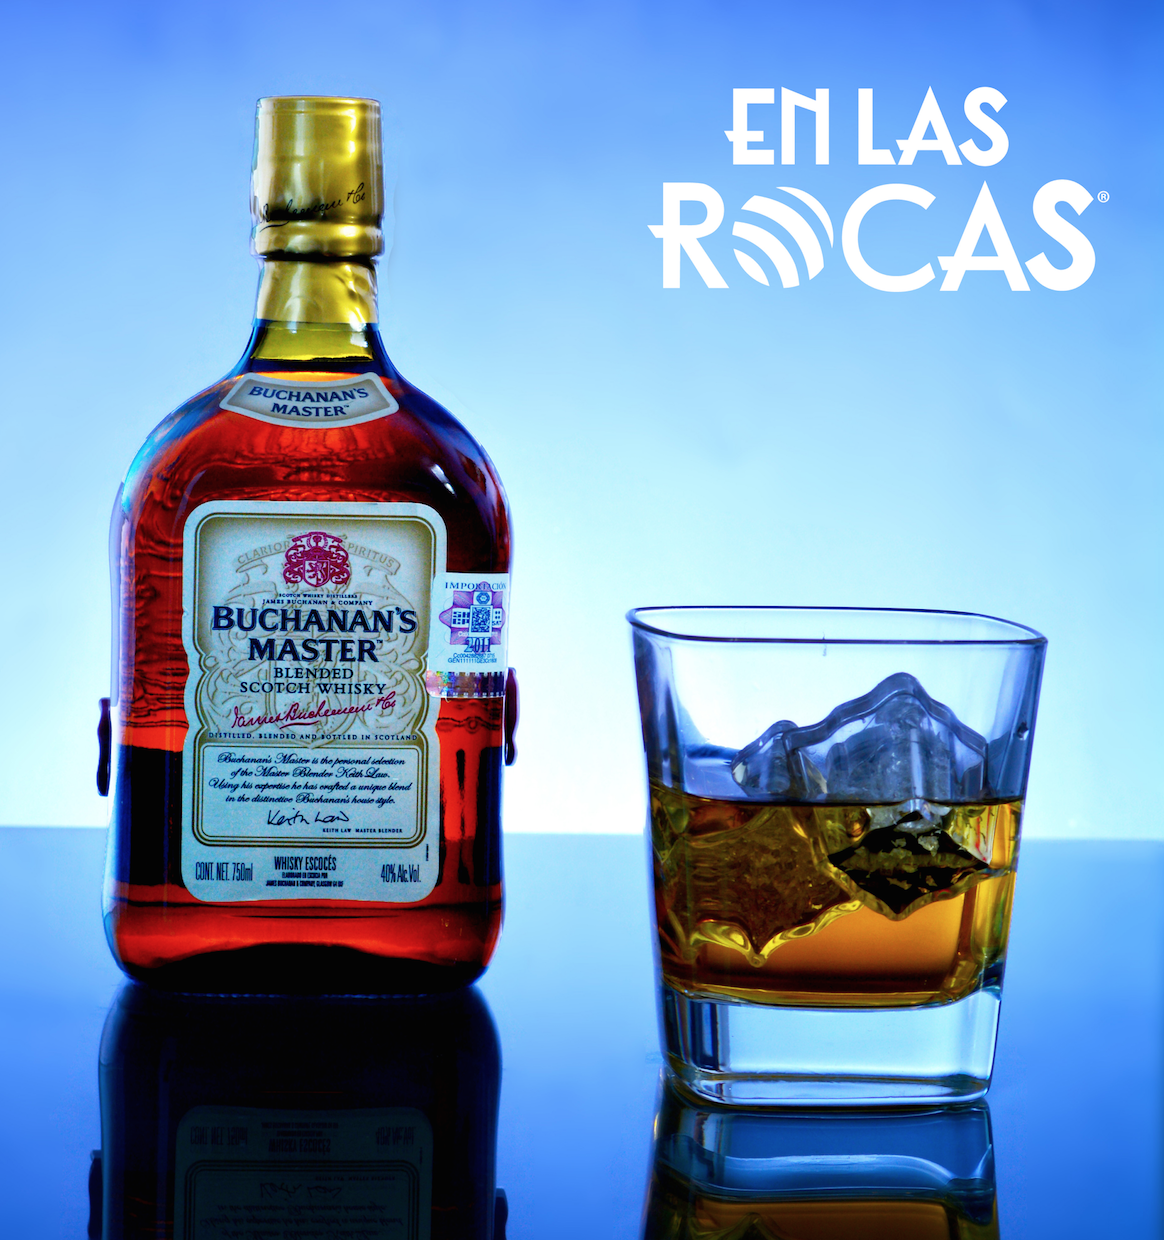 #Alcohol #EnLasRocas #Buchanans